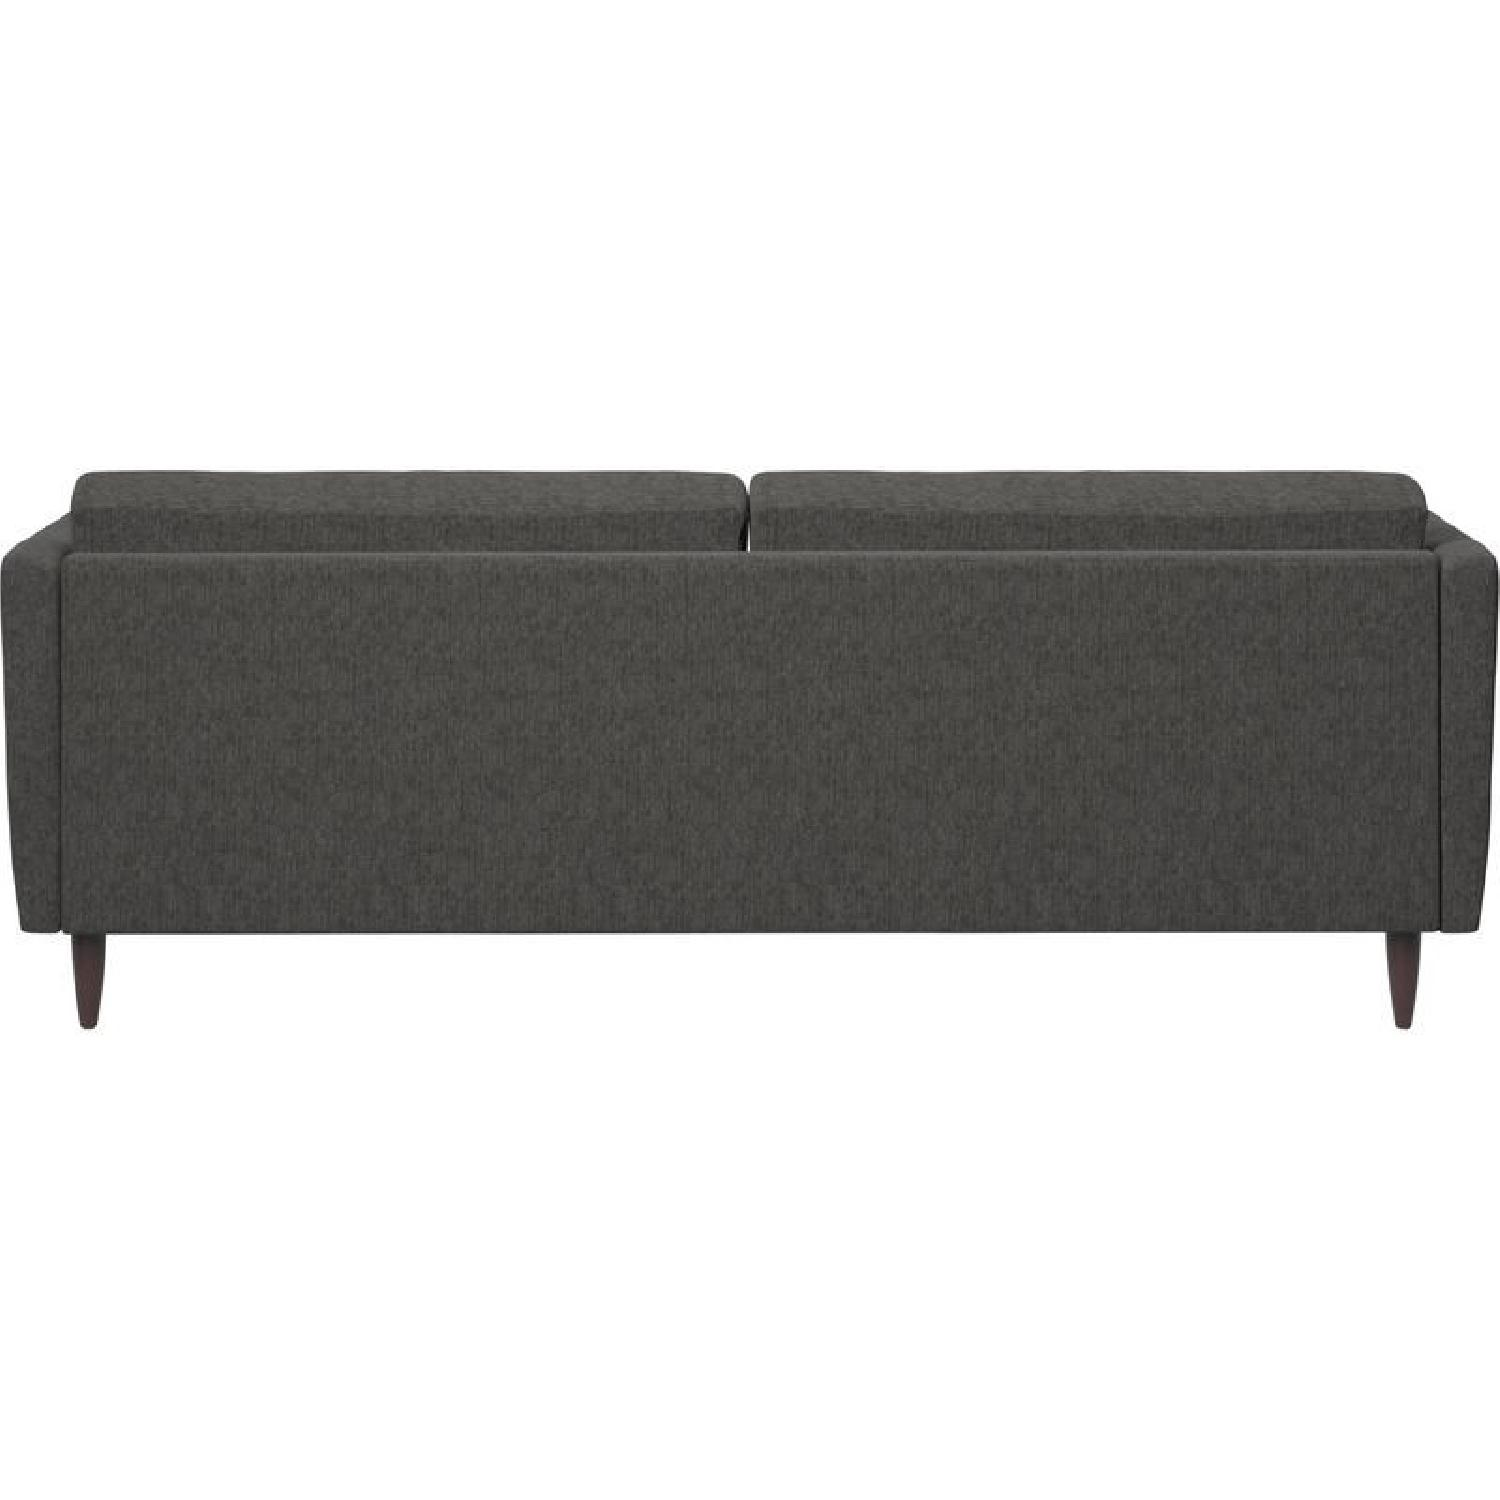 BoConcept Osaka 2.5 Seater Sofa in Dark Grey-2